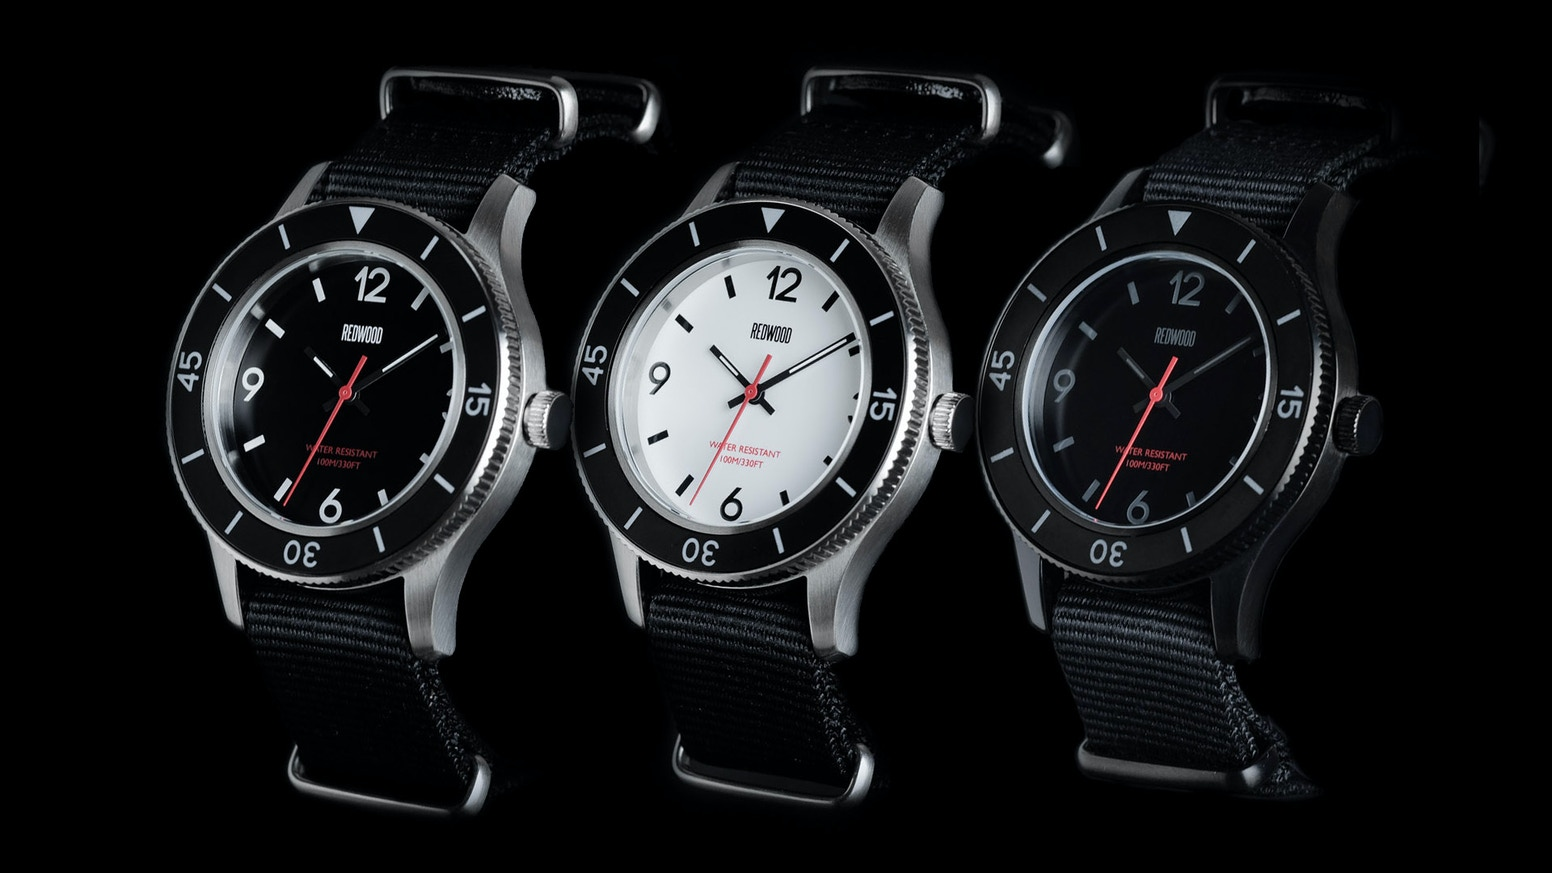 3 Models Inspired by Post-WW2 Vintage Diver Watches. Functional. Rugged. Crazy Value. Mission: Tactical